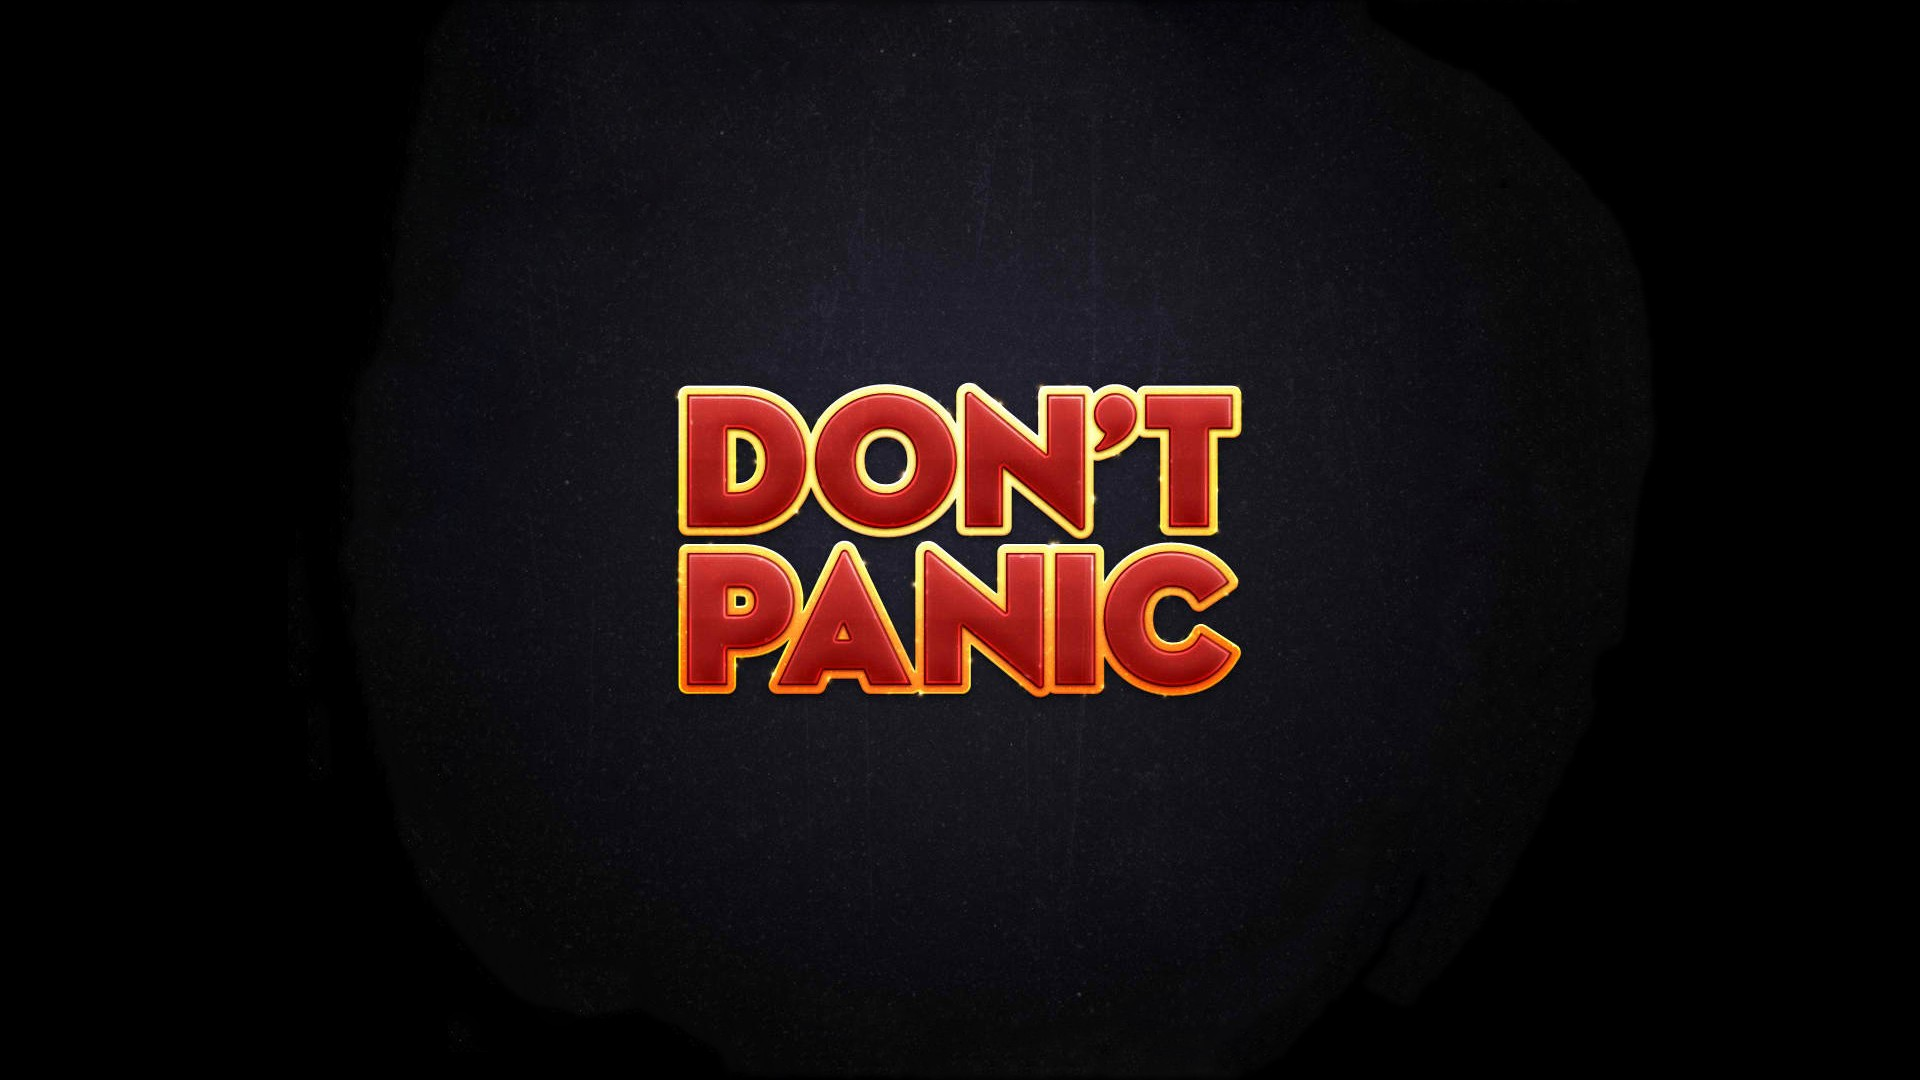 The hitchhikers guide to the galaxy don039t panic wallpaper the hitchhikers guide to the galaxy don039t panic wallpaper 1920x1080 61943 wallpaperup voltagebd Image collections